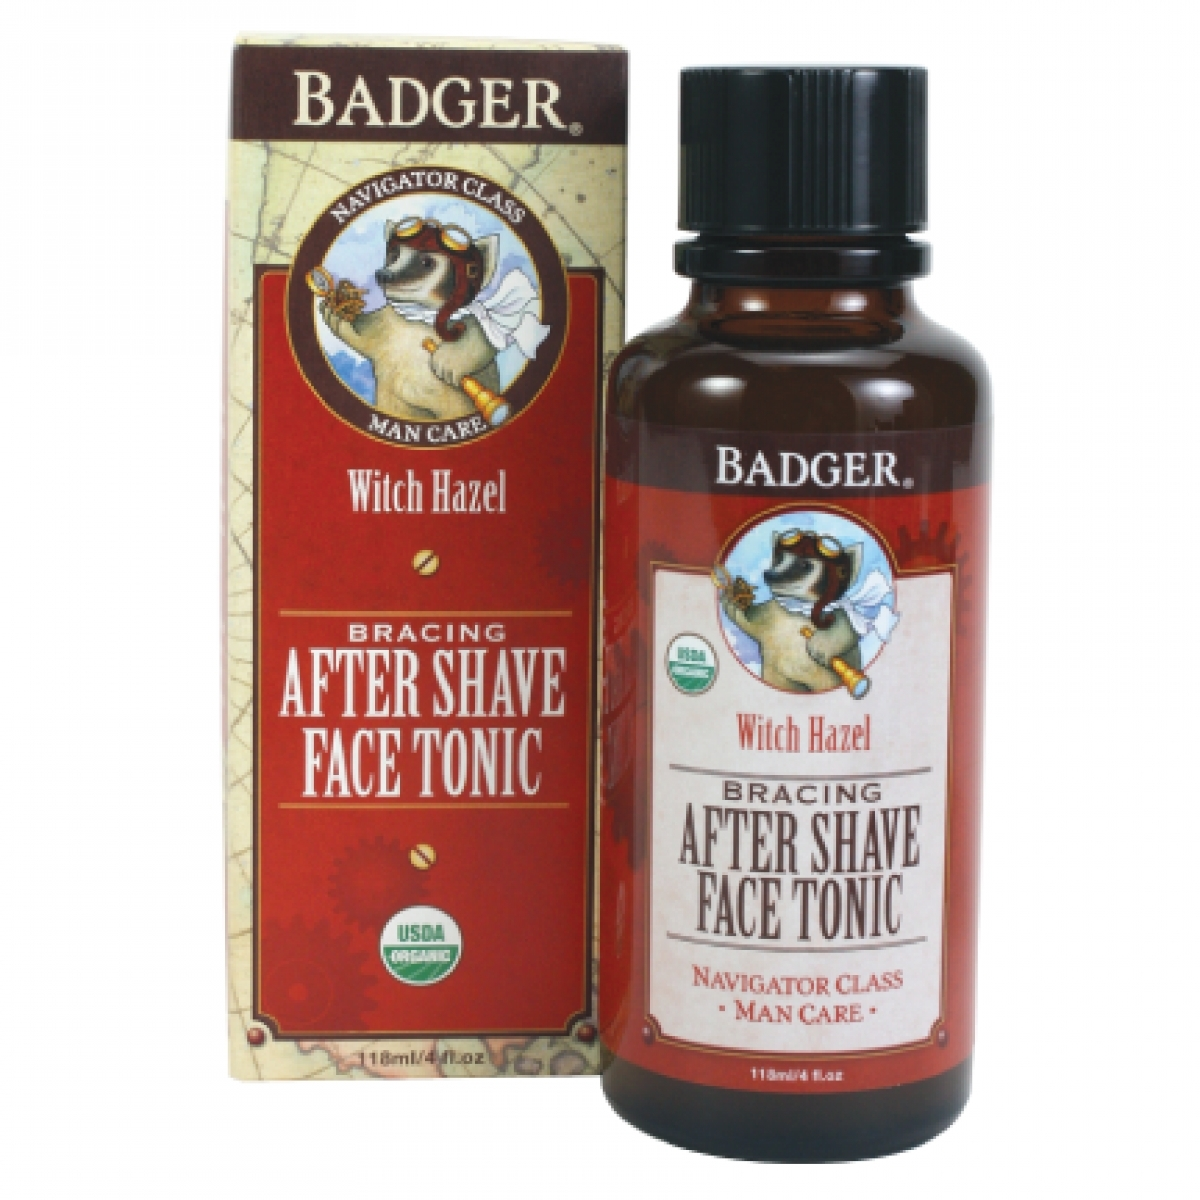 Badger After Shave Face Tonic (4oz)